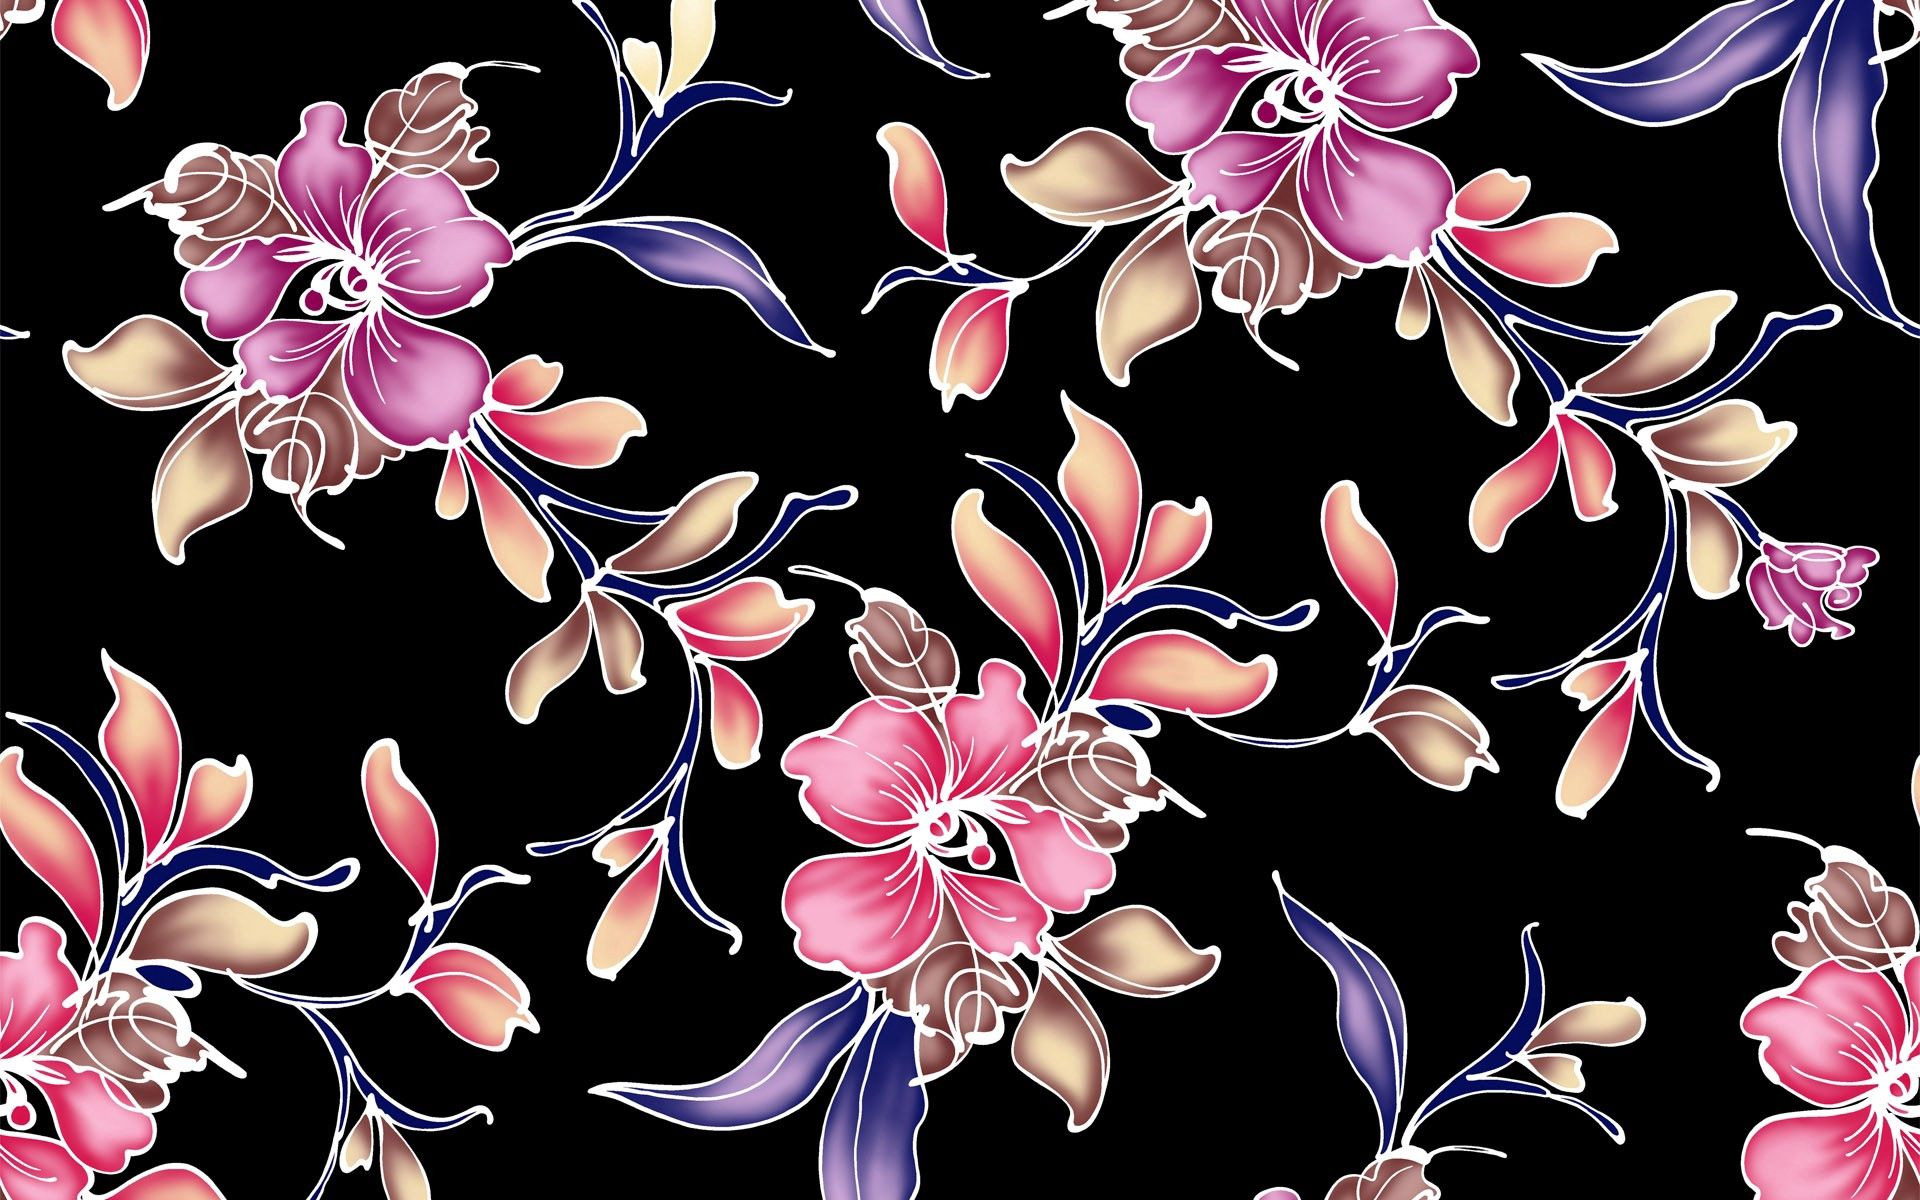 80540 download wallpaper Flowers, Textures, Background, Patterns, Dark, Texture screensavers and pictures for free